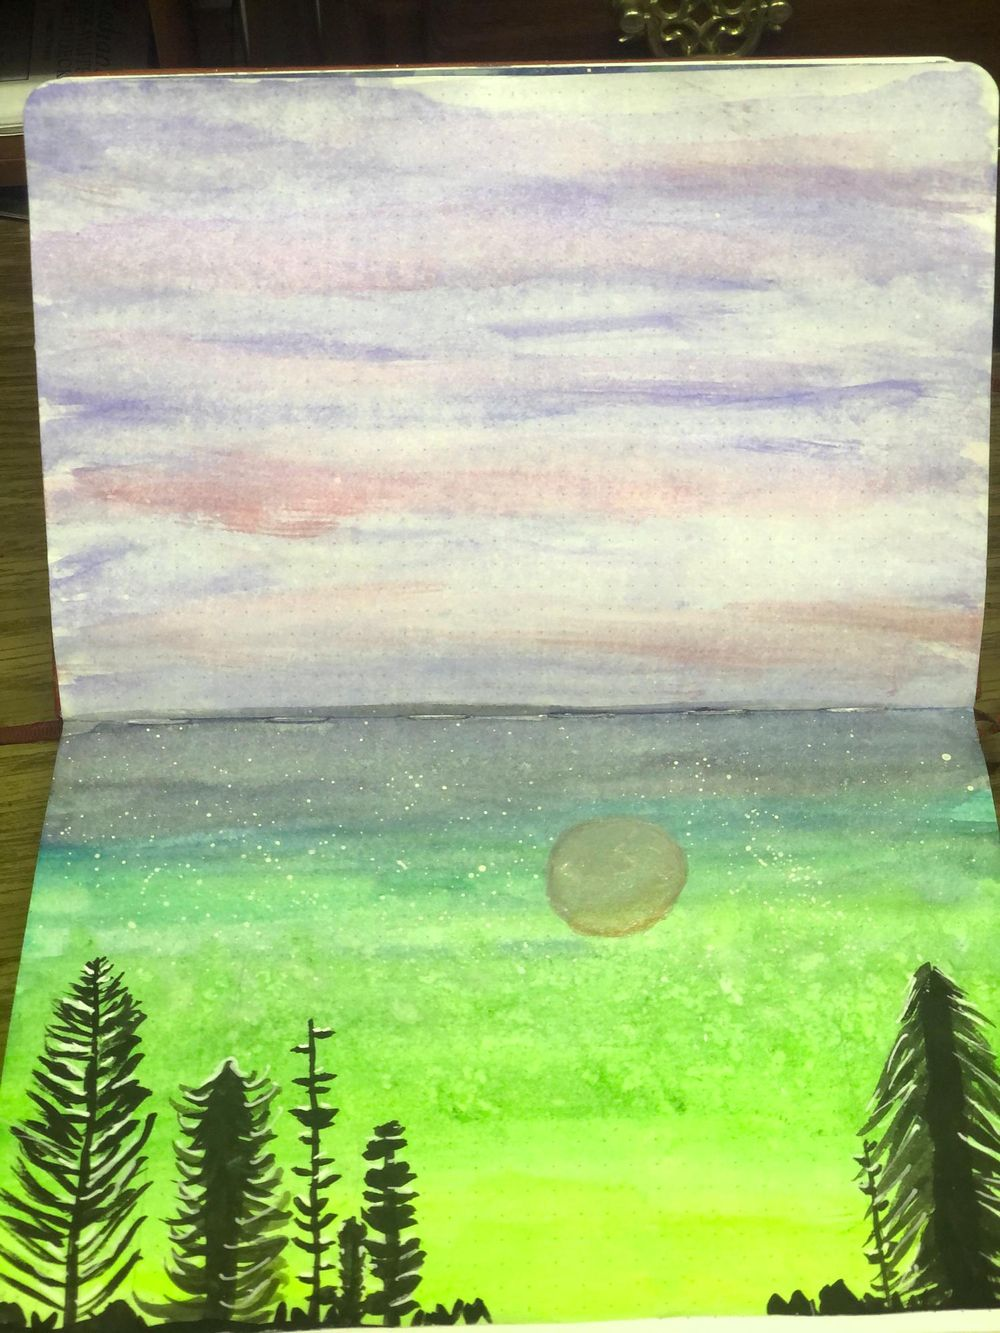 Pine Trees with Moon in Art Journal - image 1 - student project